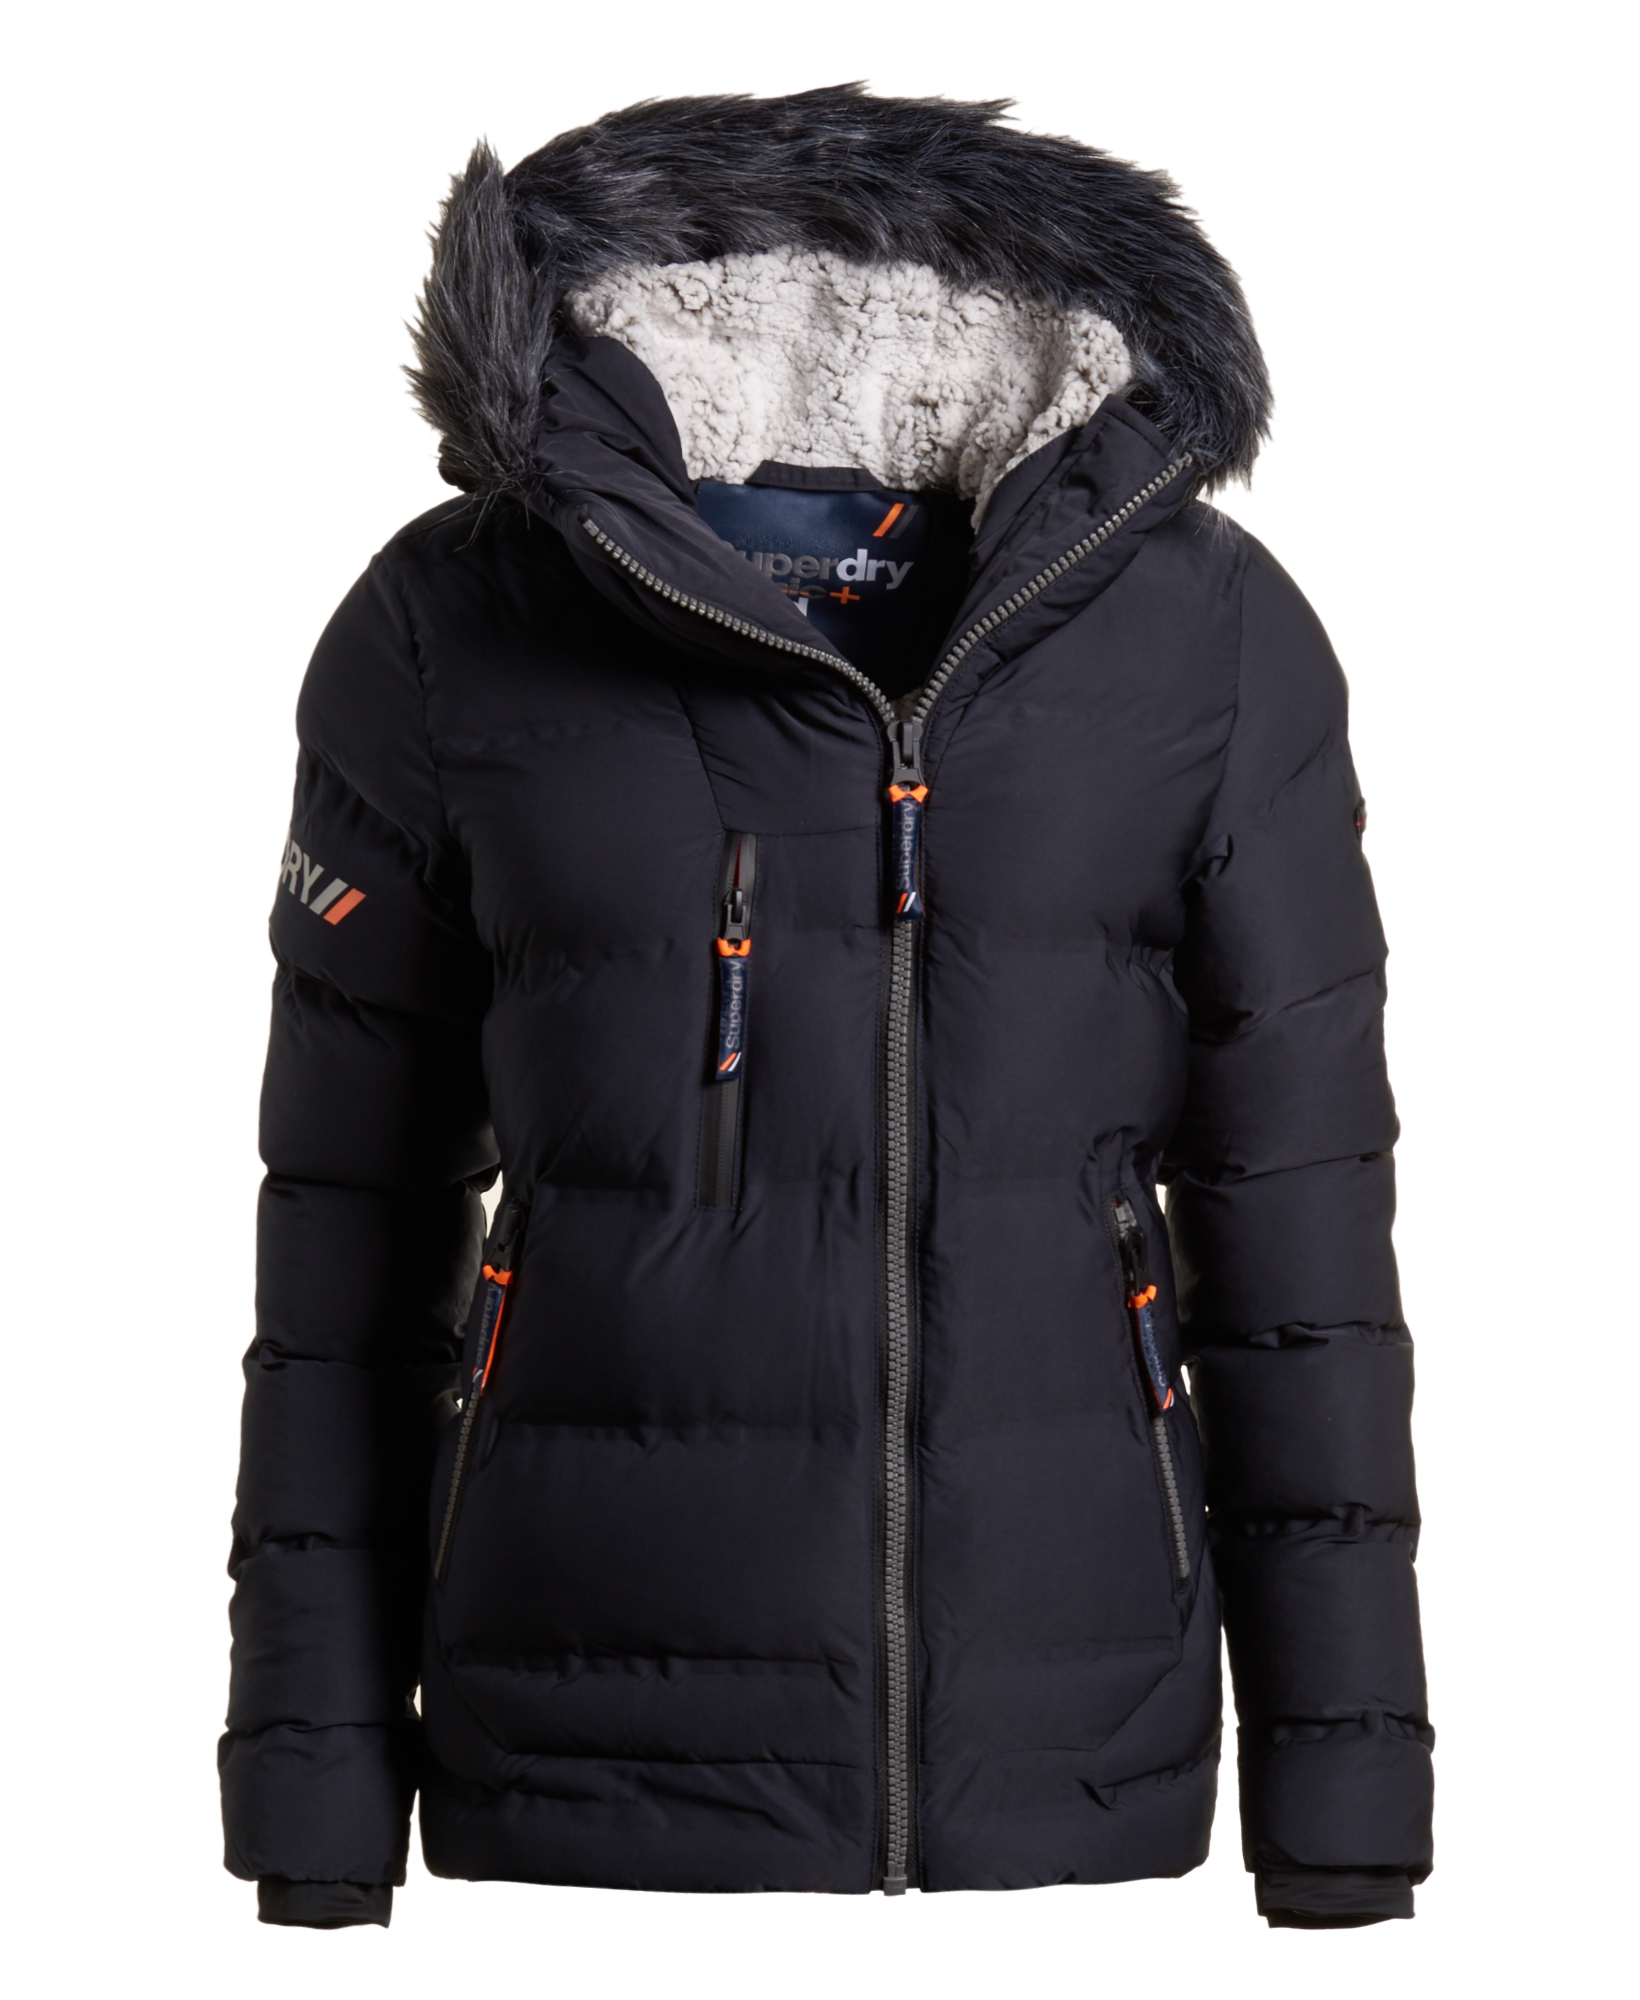 38a370e44 Details about New Womens Superdry Sdx Extreme Puffer Jacket Navy